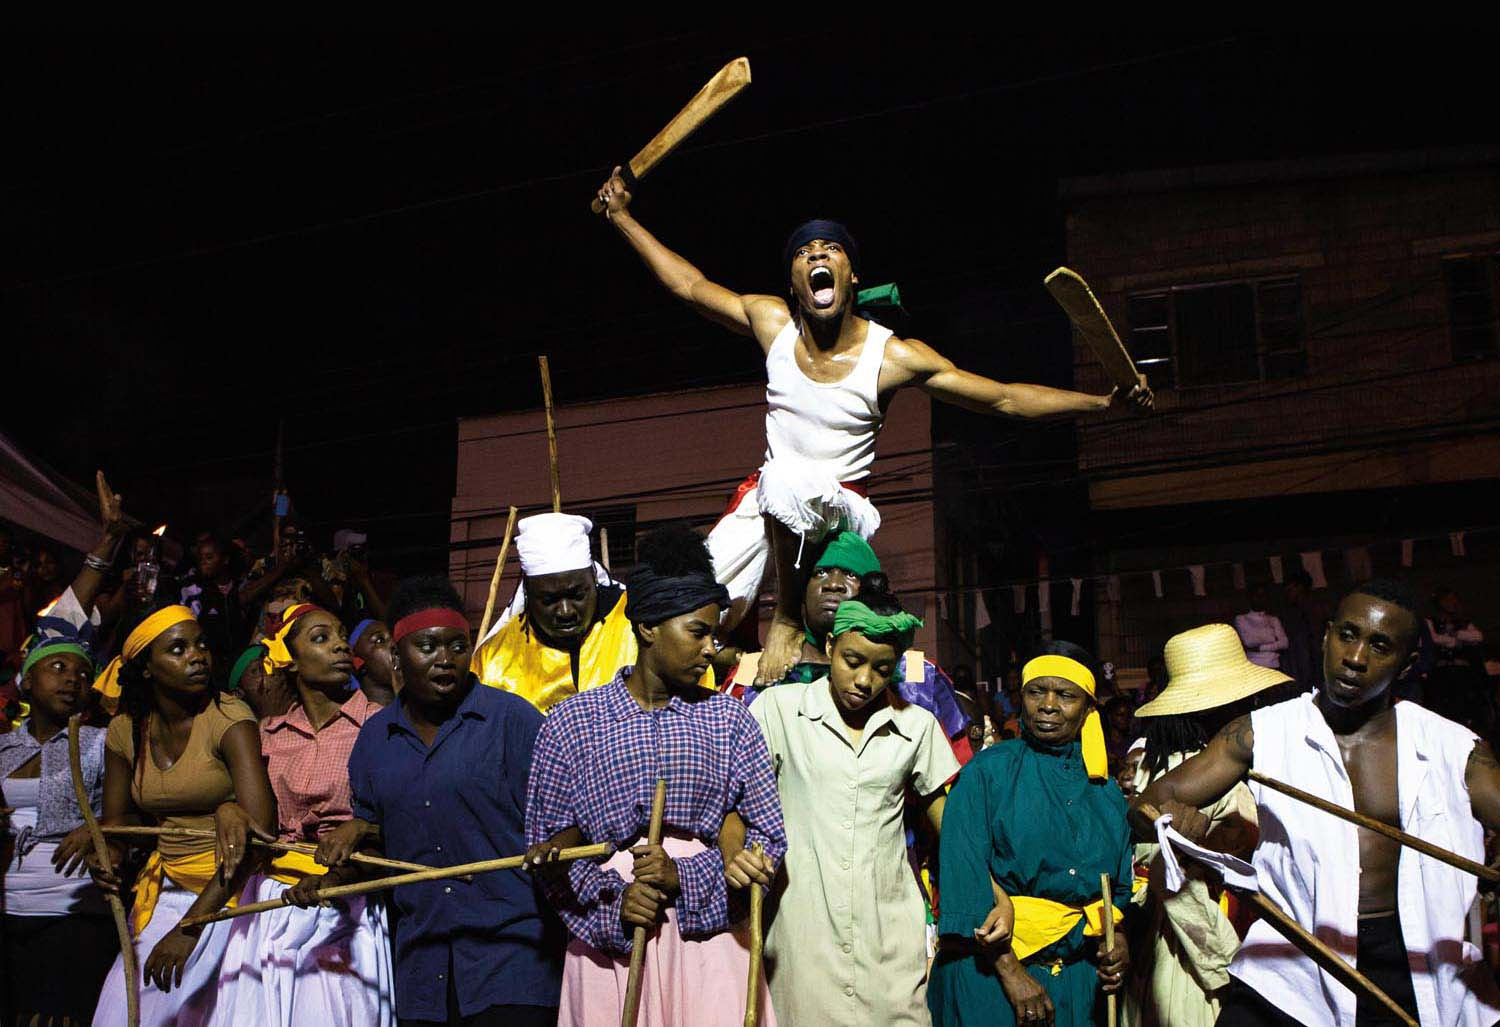 Kambule performers re-enact the beginning of the 1881 Canboulay Riots. Photo by Maria Nunes